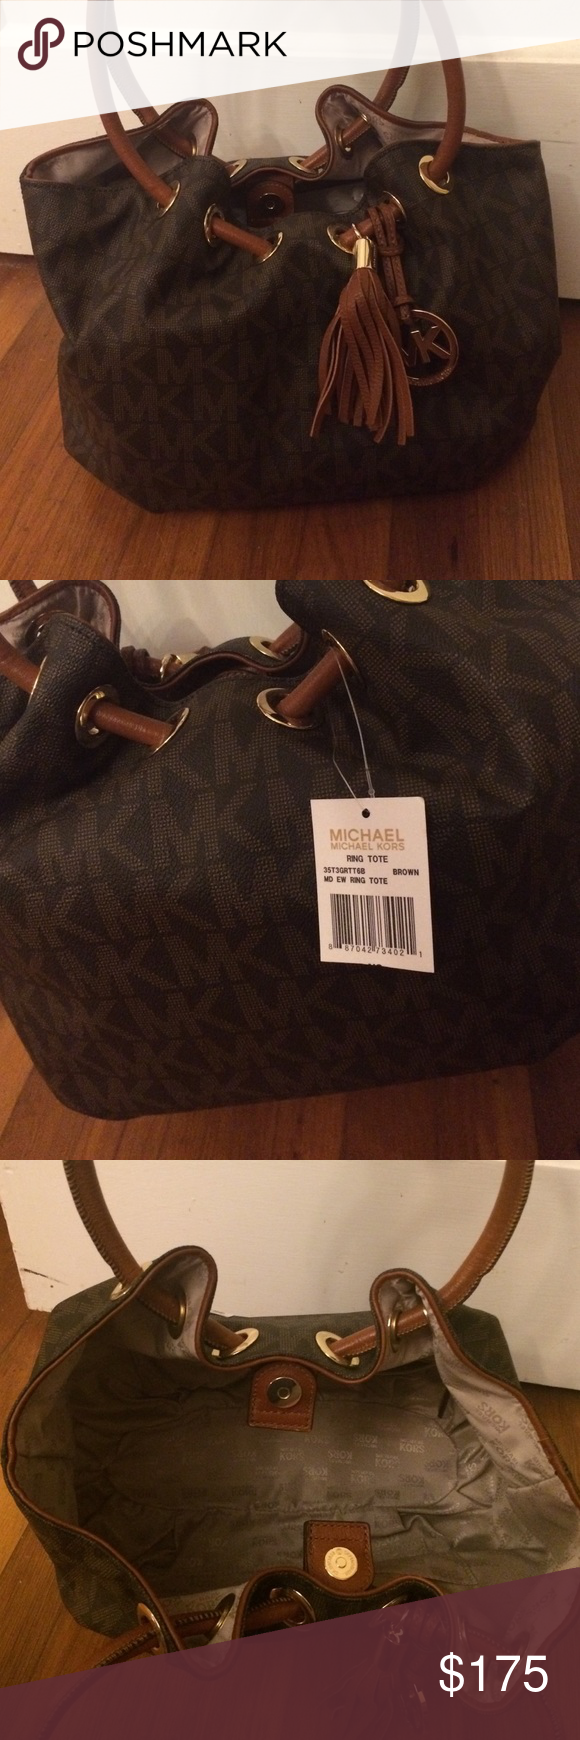 NWT Michael Kors Brown Ring Tote Brand new with tags, Brown Michael Kors Ring Tote. Perfect condition, received as a gift and could not return without receipt. Michael Kors Bags Shoulder Bags